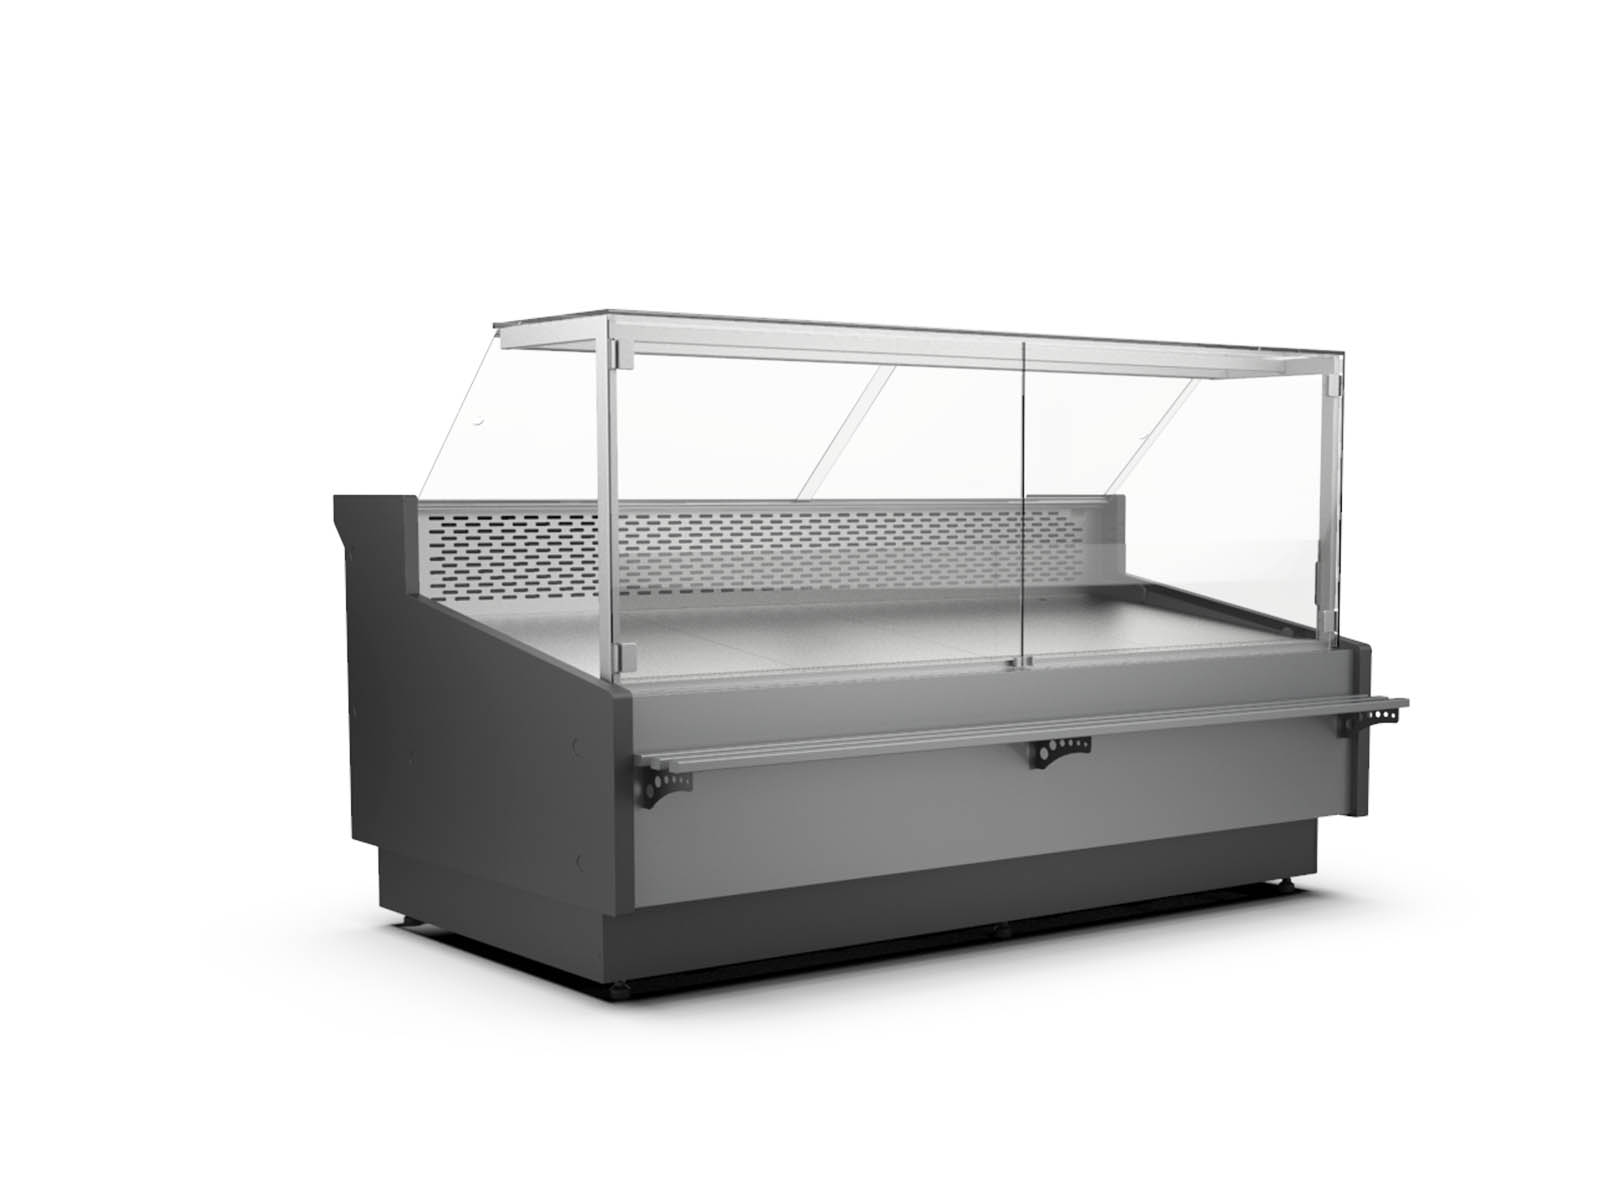 Cooling showcases and counters